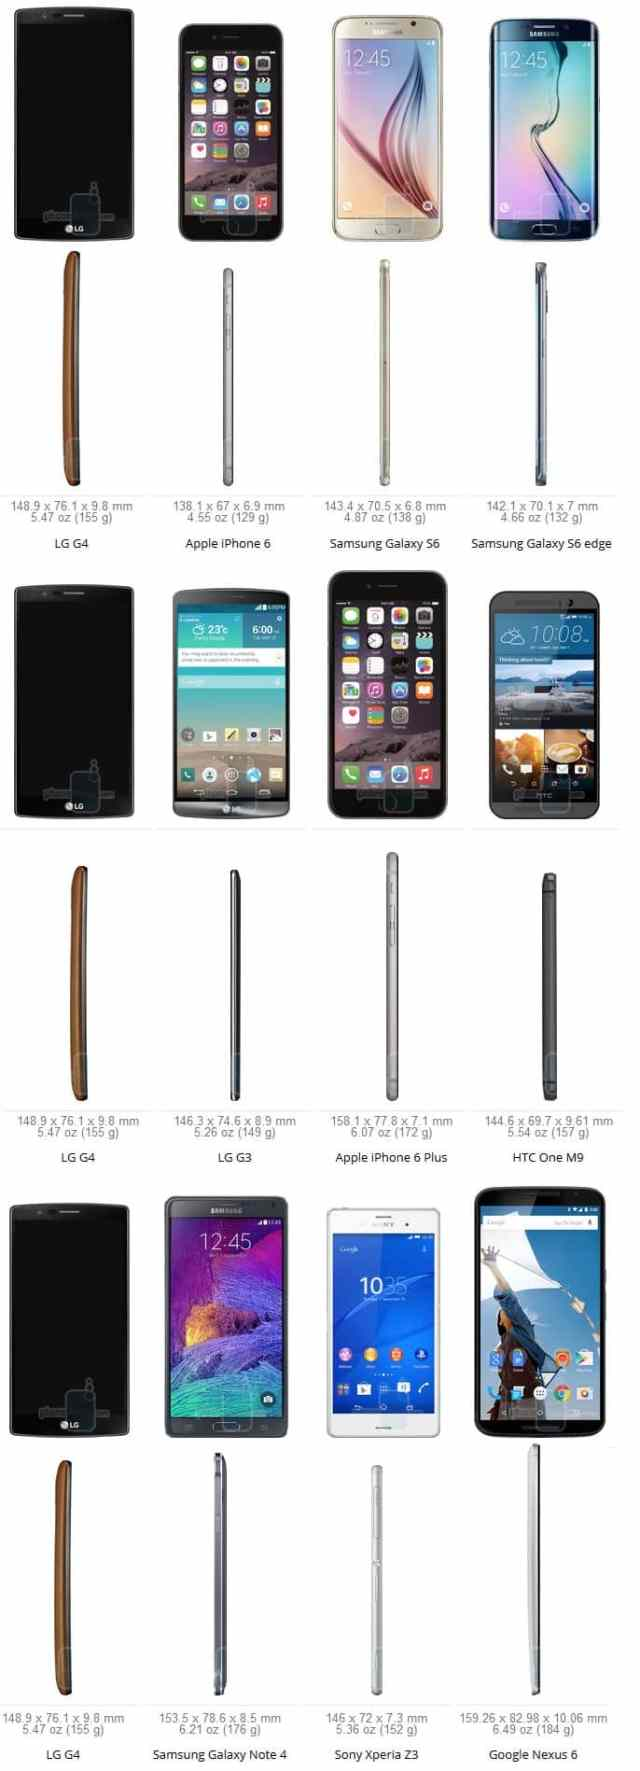 LG G4 Comparsion